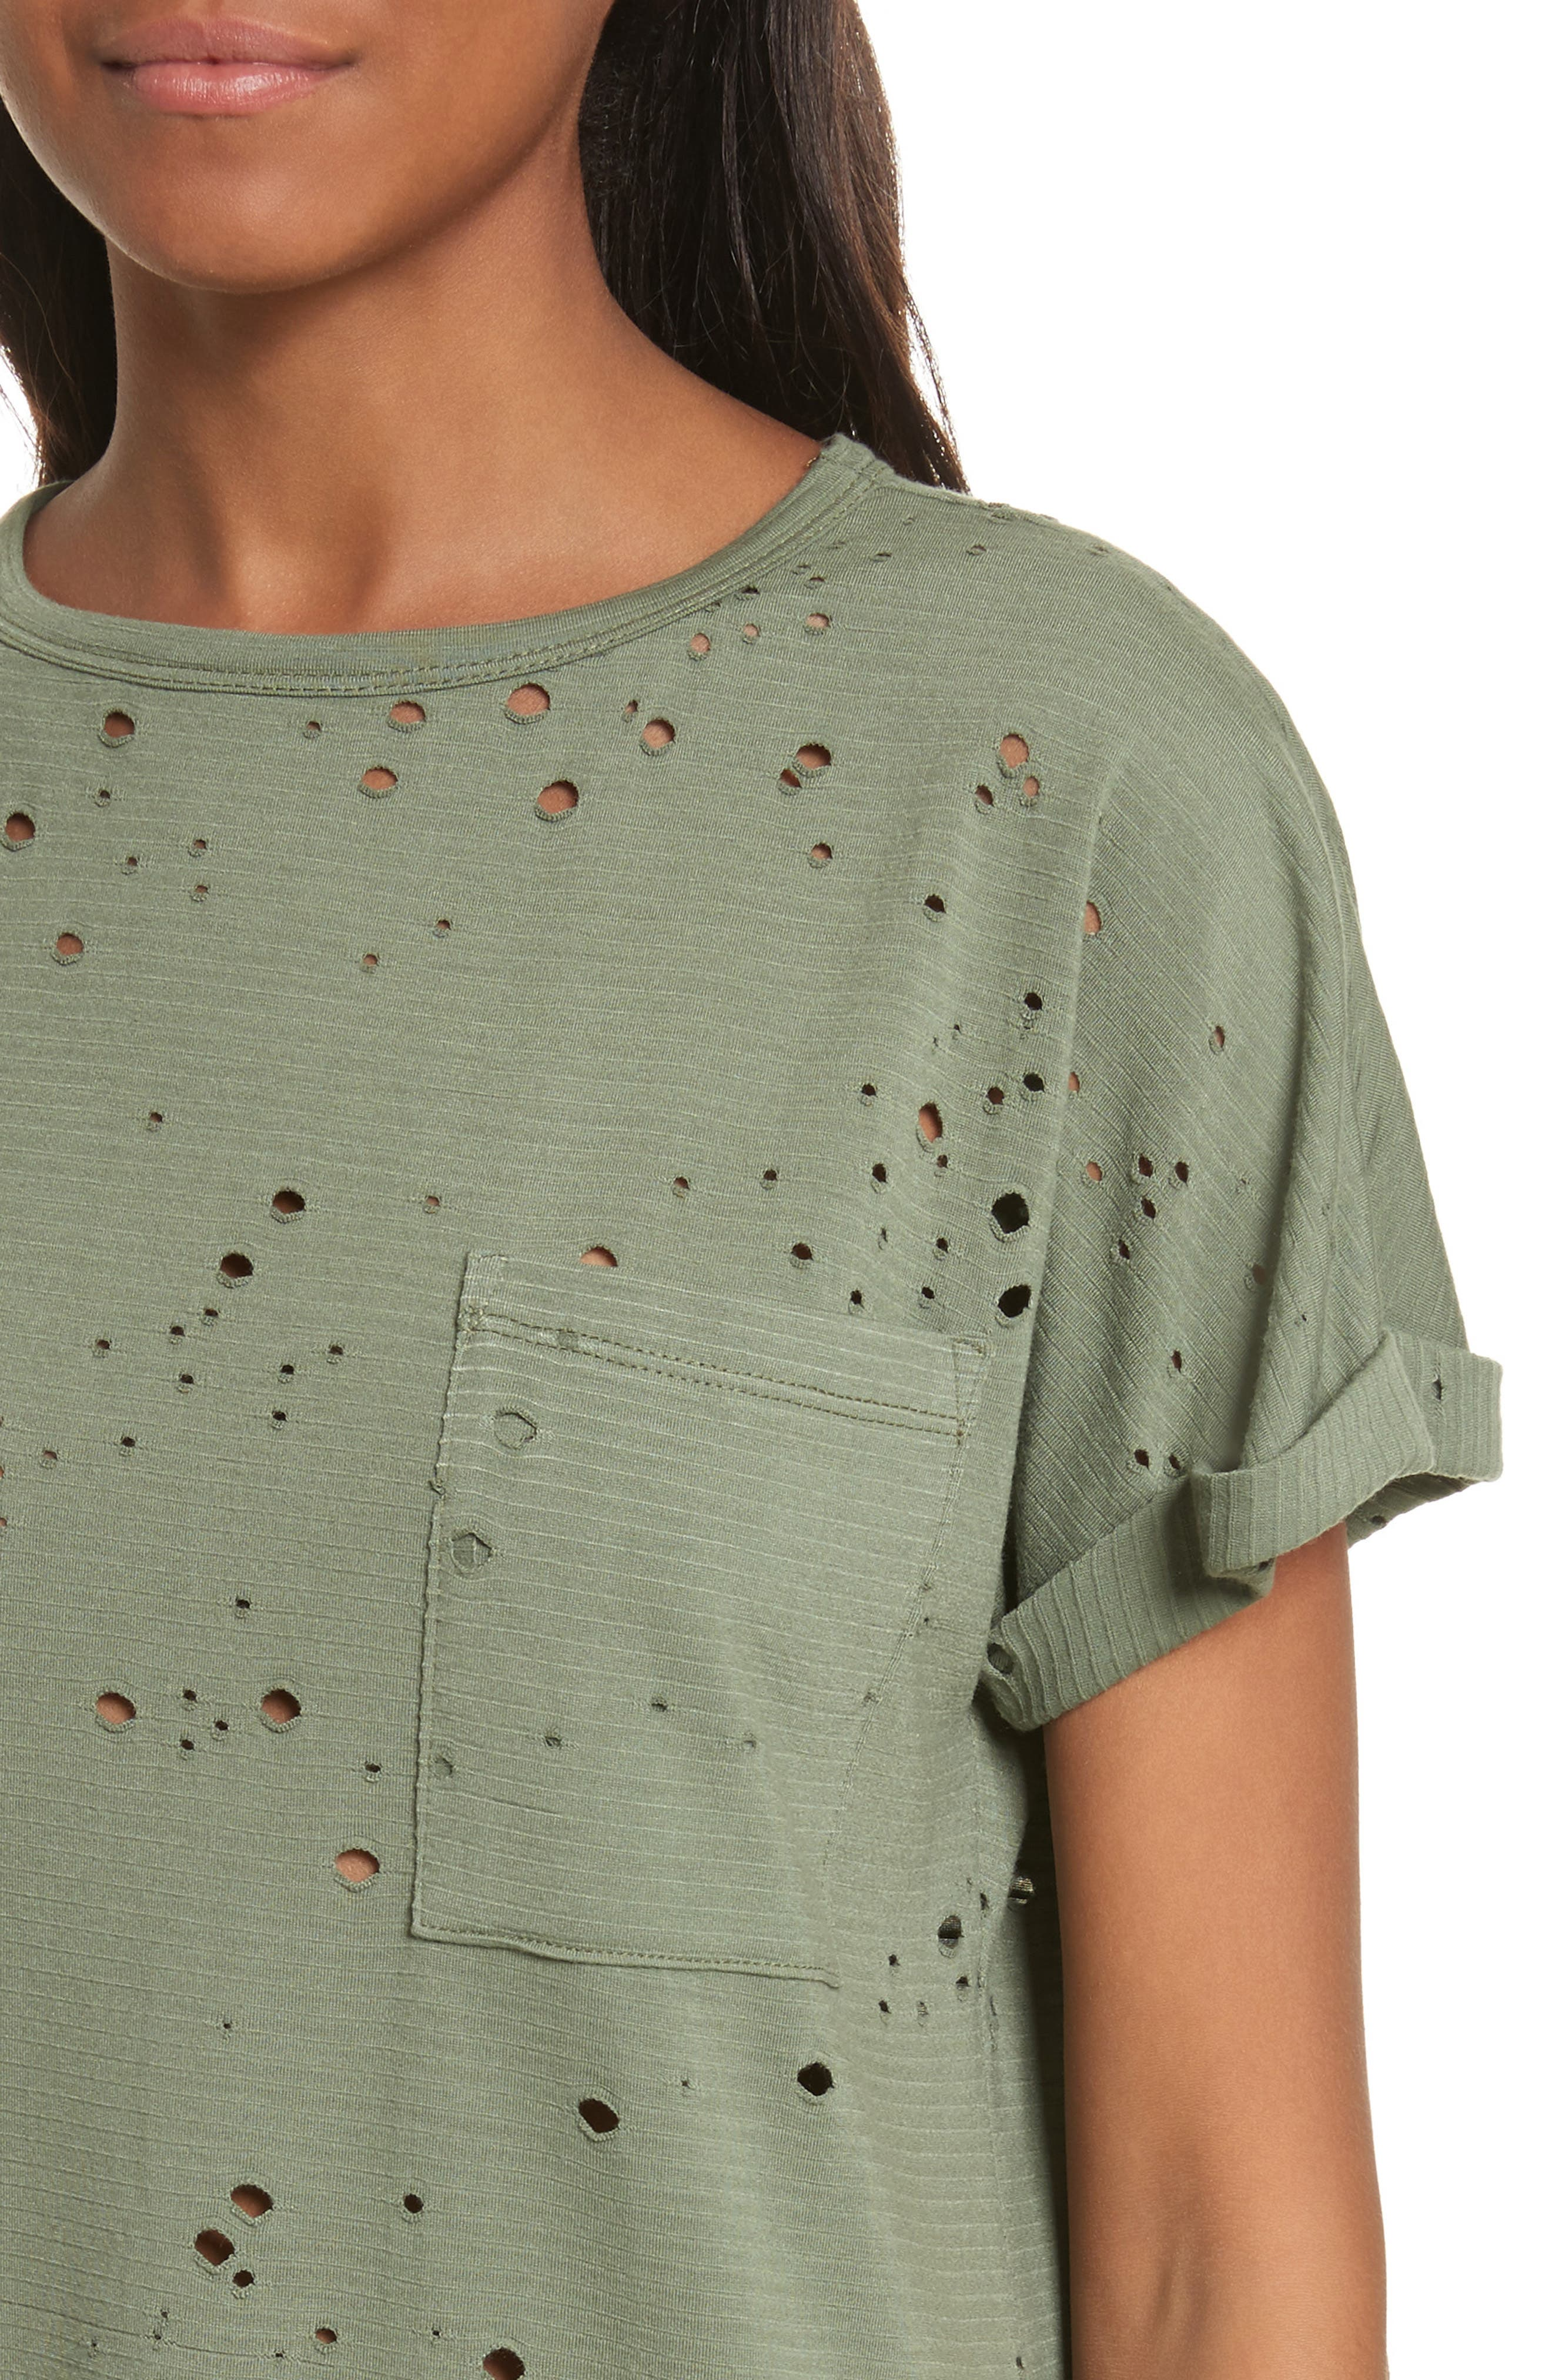 Waverly Perforated Tee,                             Alternate thumbnail 4, color,                             310